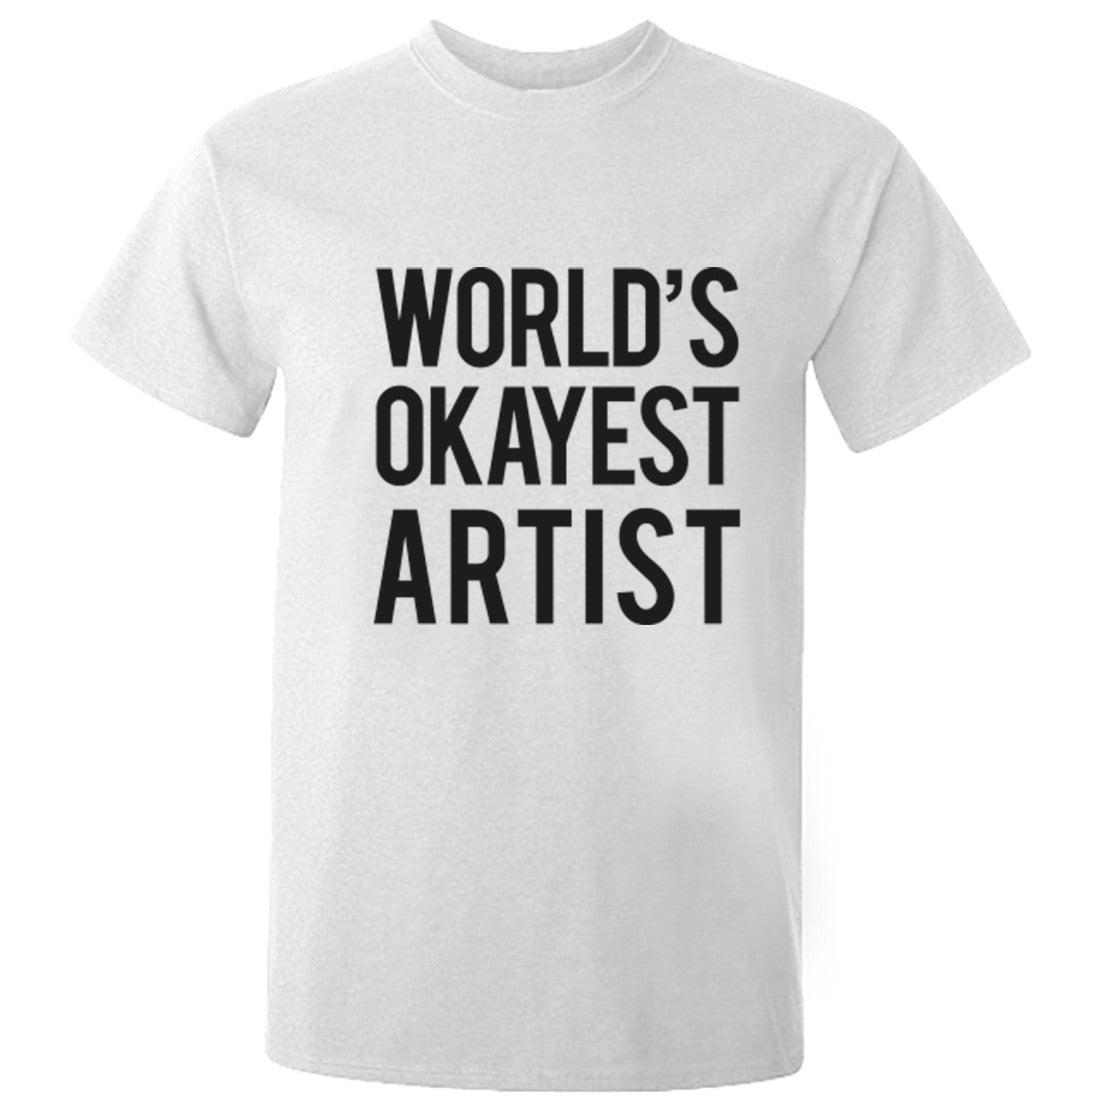 Worlds Okayest Artist Unisex Fit T-Shirt K0491 - Illustrated Identity Ltd.